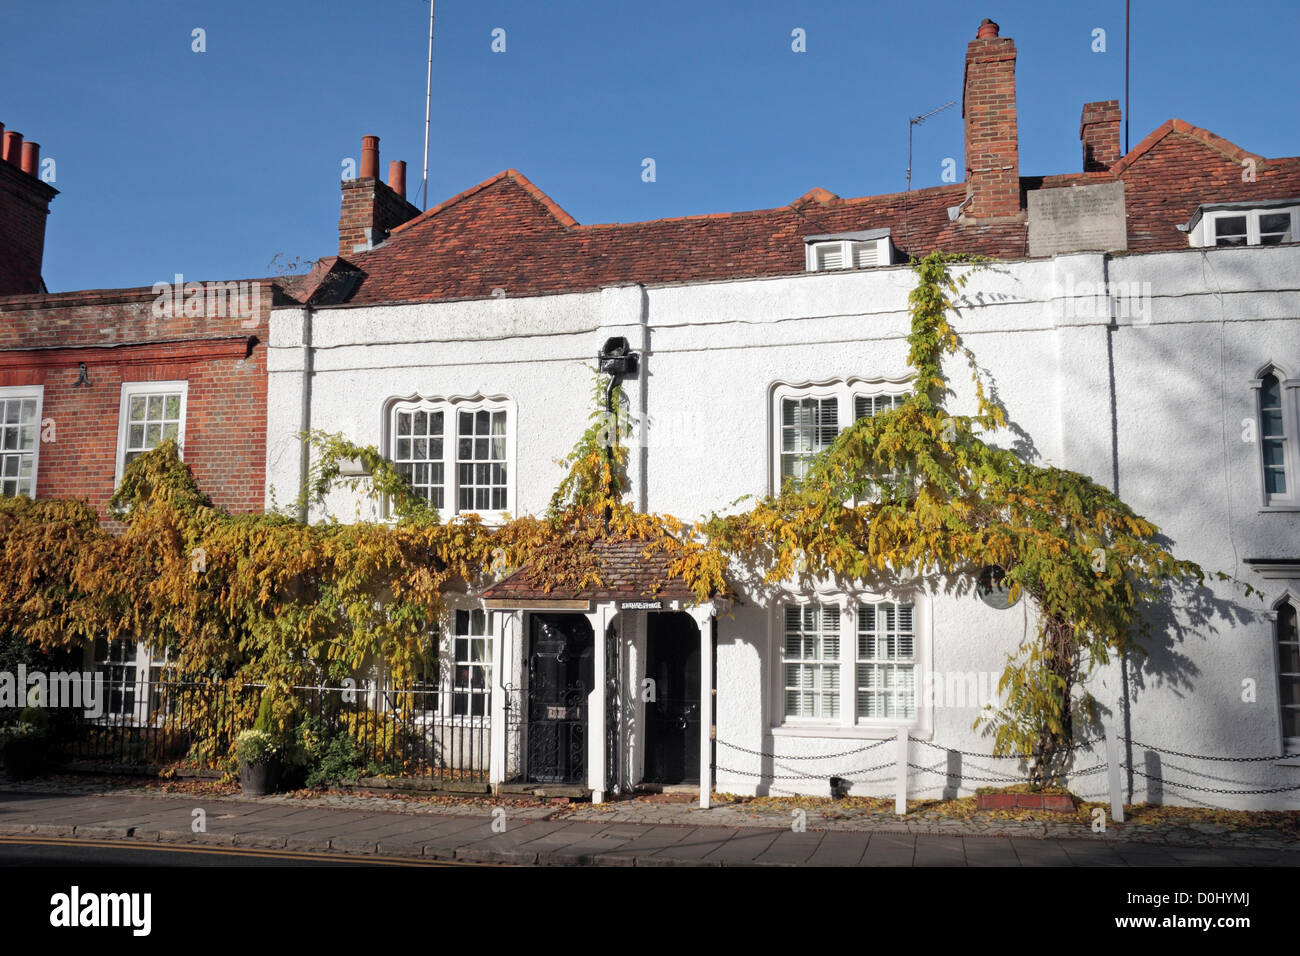 Mary shelley immagini mary shelley fotos stock alamy for Disegni casa cottage